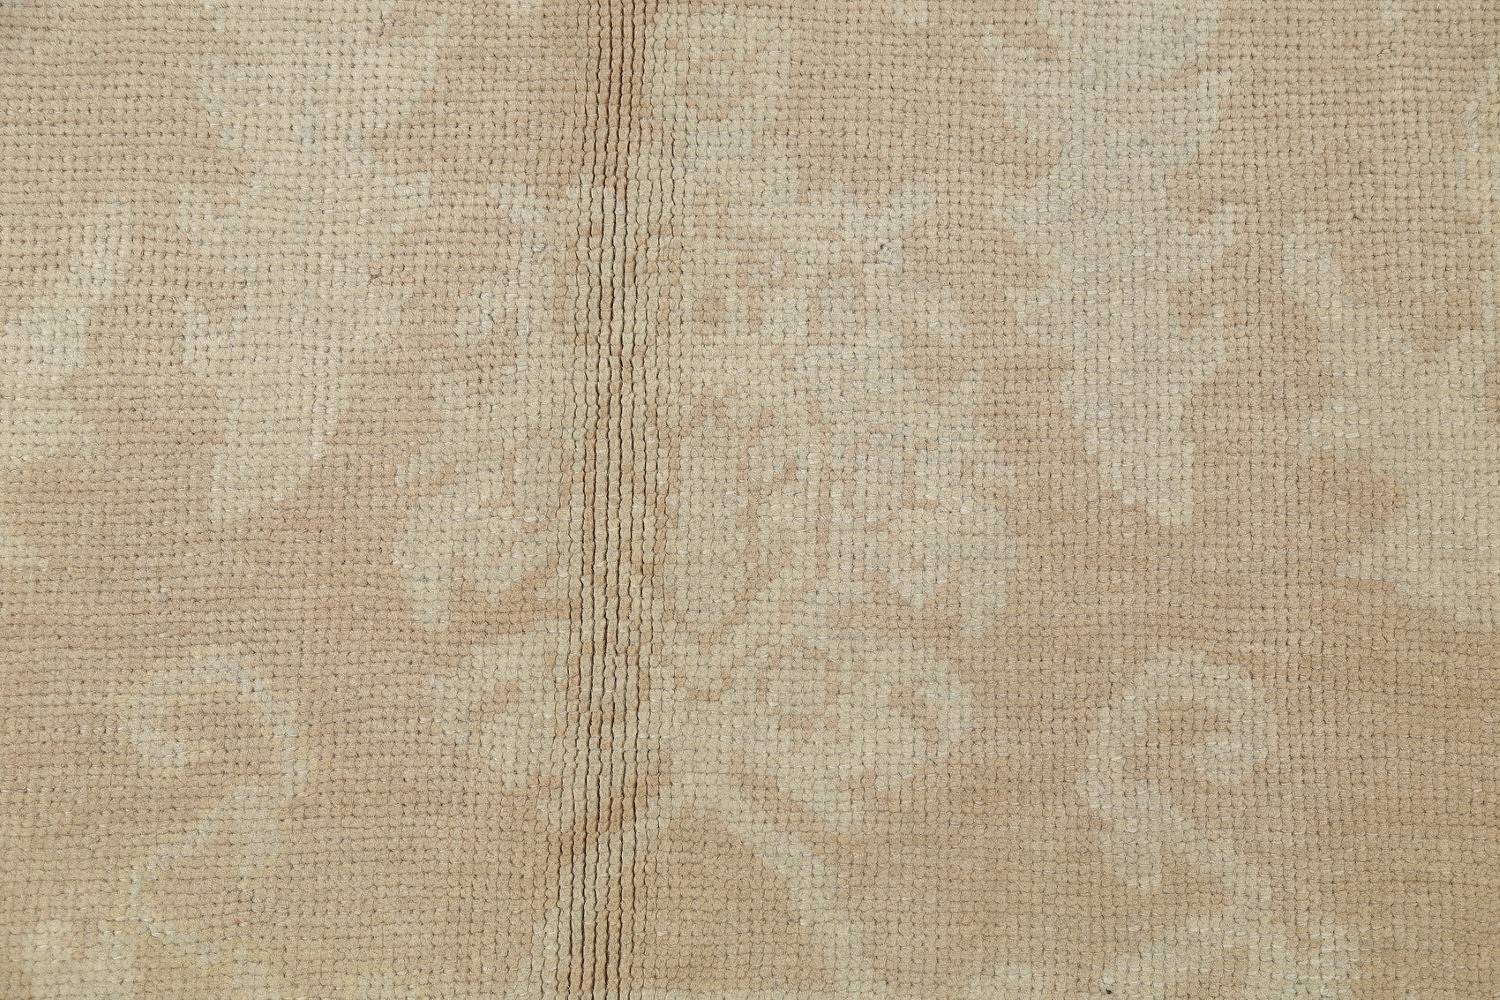 Vegetable Dye Muted Gold Oushak Turkish Hand-Knotted Runner Rug 7x16 image 8